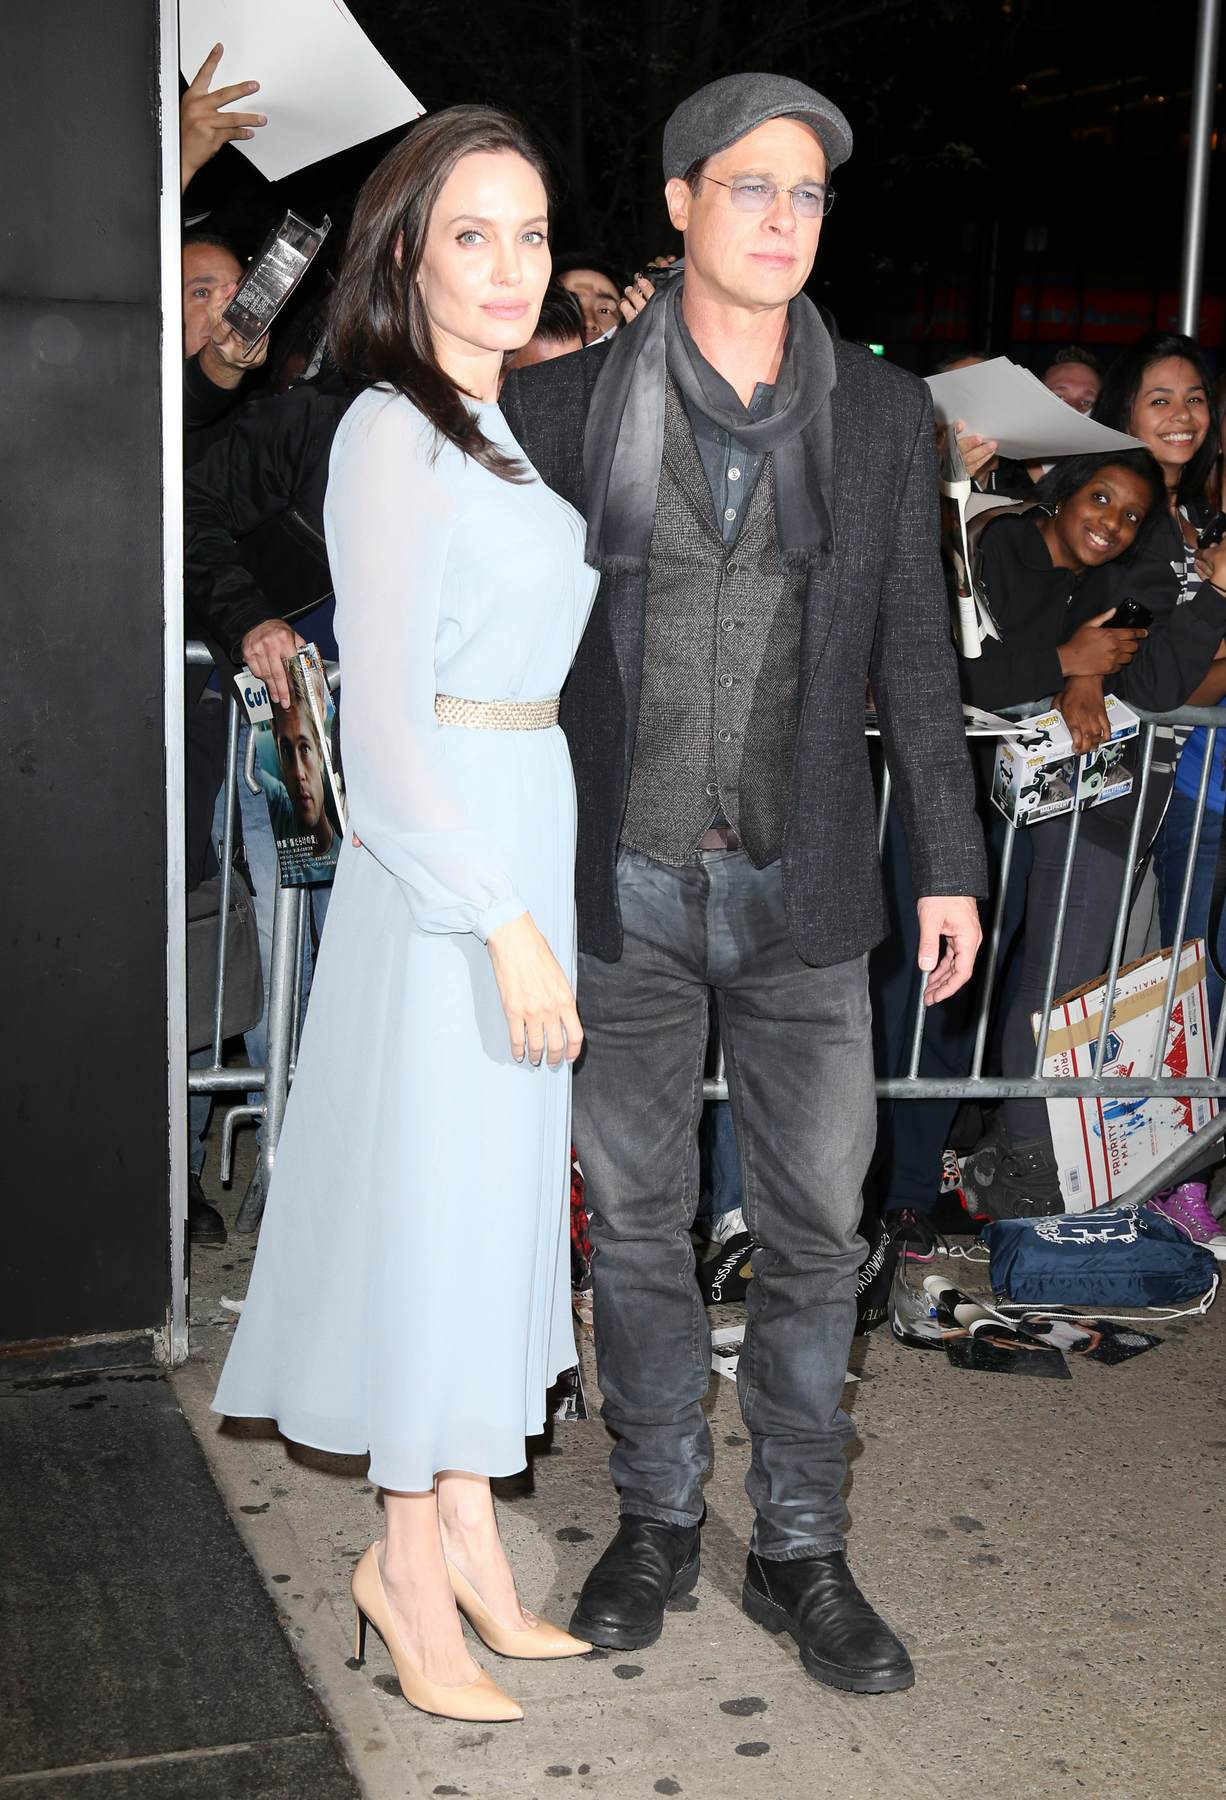 Brad Pitt and Angelina Jolie Attends By The Sea Q and A Event-1